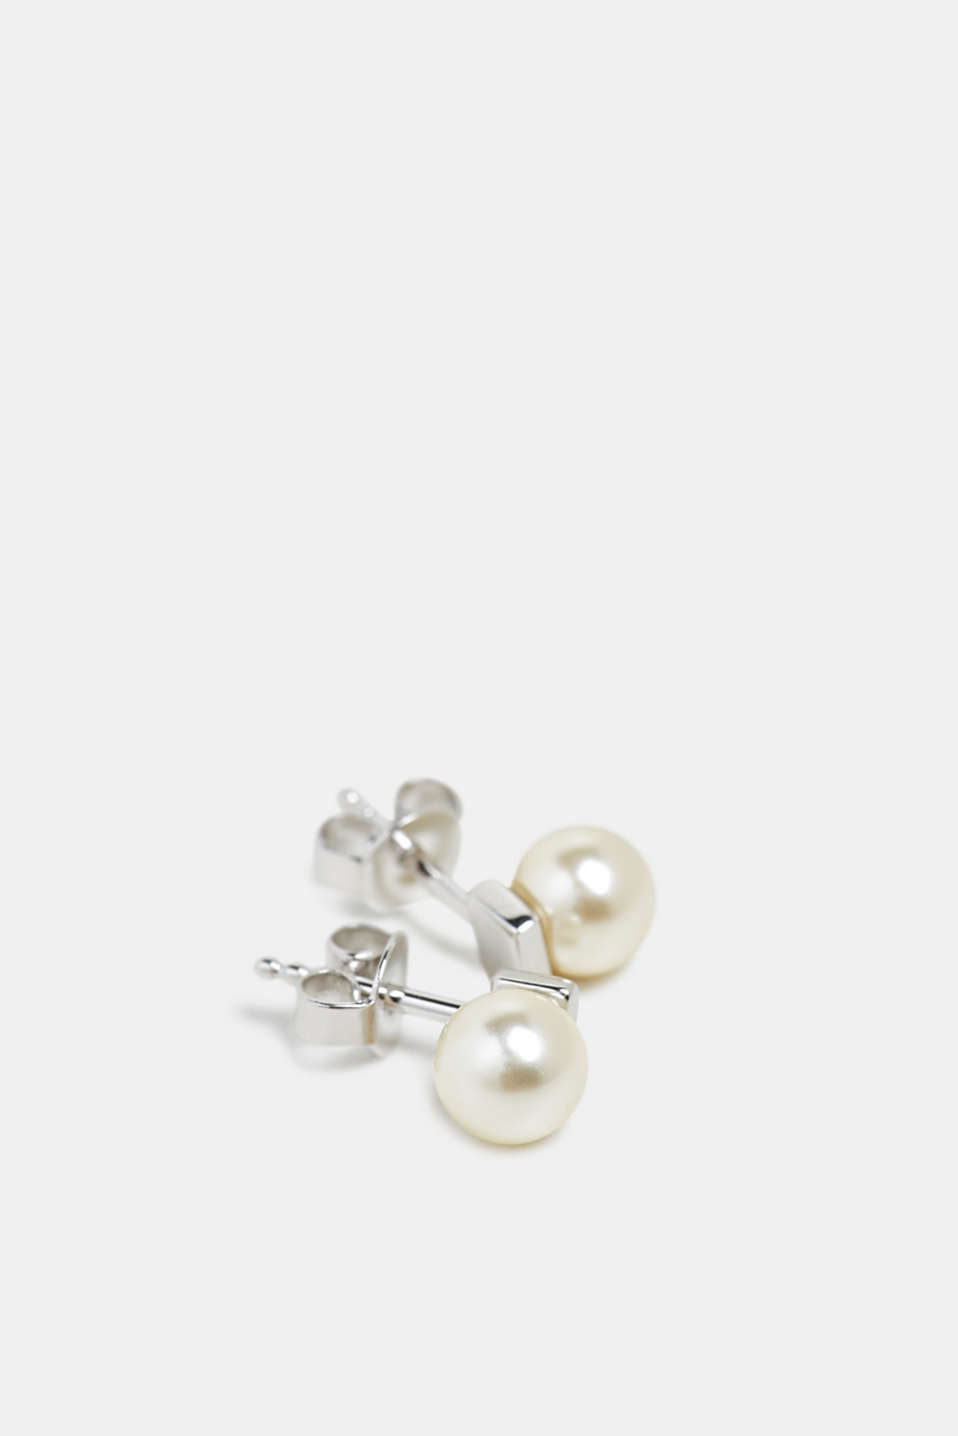 Esprit - Stud earrings with a bead, sterling silver